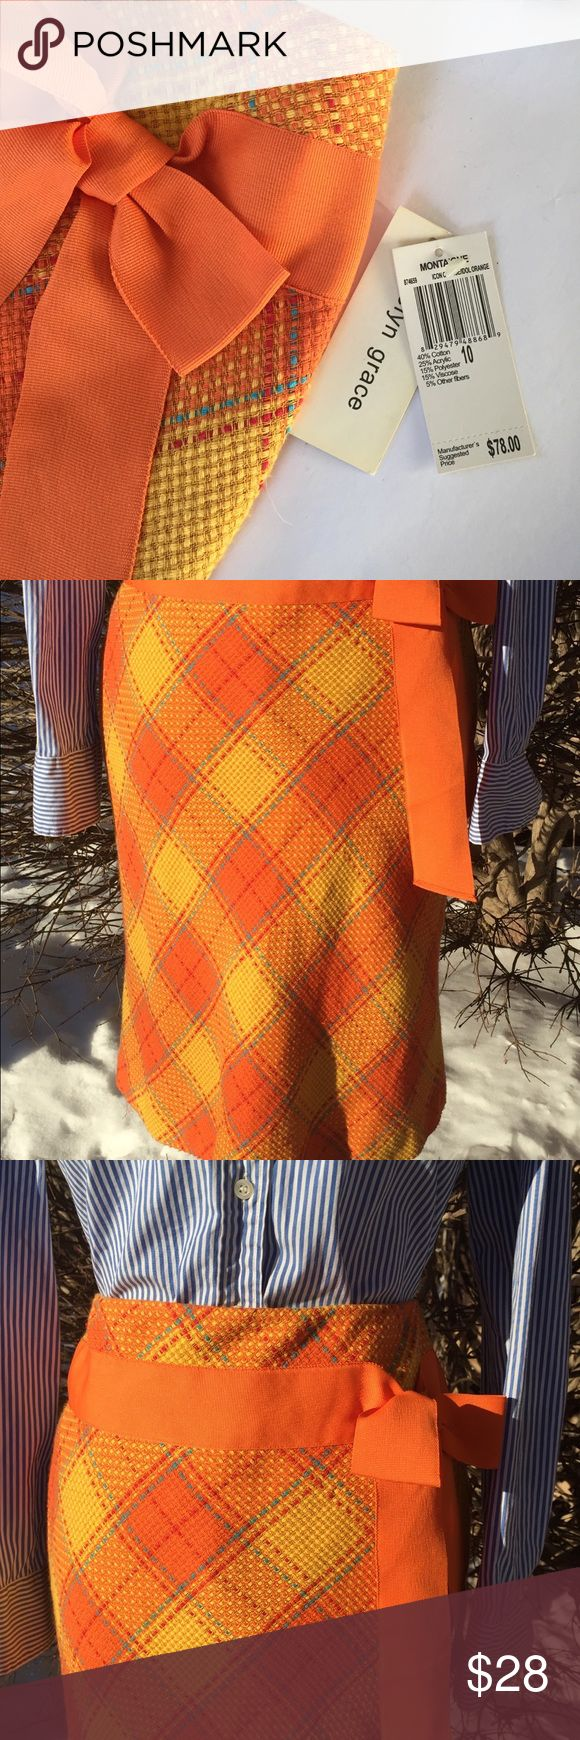 """NWT: Evelyn Grace Plaid lined pencil skirt This fabulous lined wool pencil skirt boasts a stunning plaid palette of orange, red, yellows, and blue. Side zip. The best feature is the bright orange side bow. A little quirky, a little vintage, a LOT stylish. Don't miss out on this Unique piece. Waist: 32"""", Length: 23"""". Evelyn Grace Skirts"""